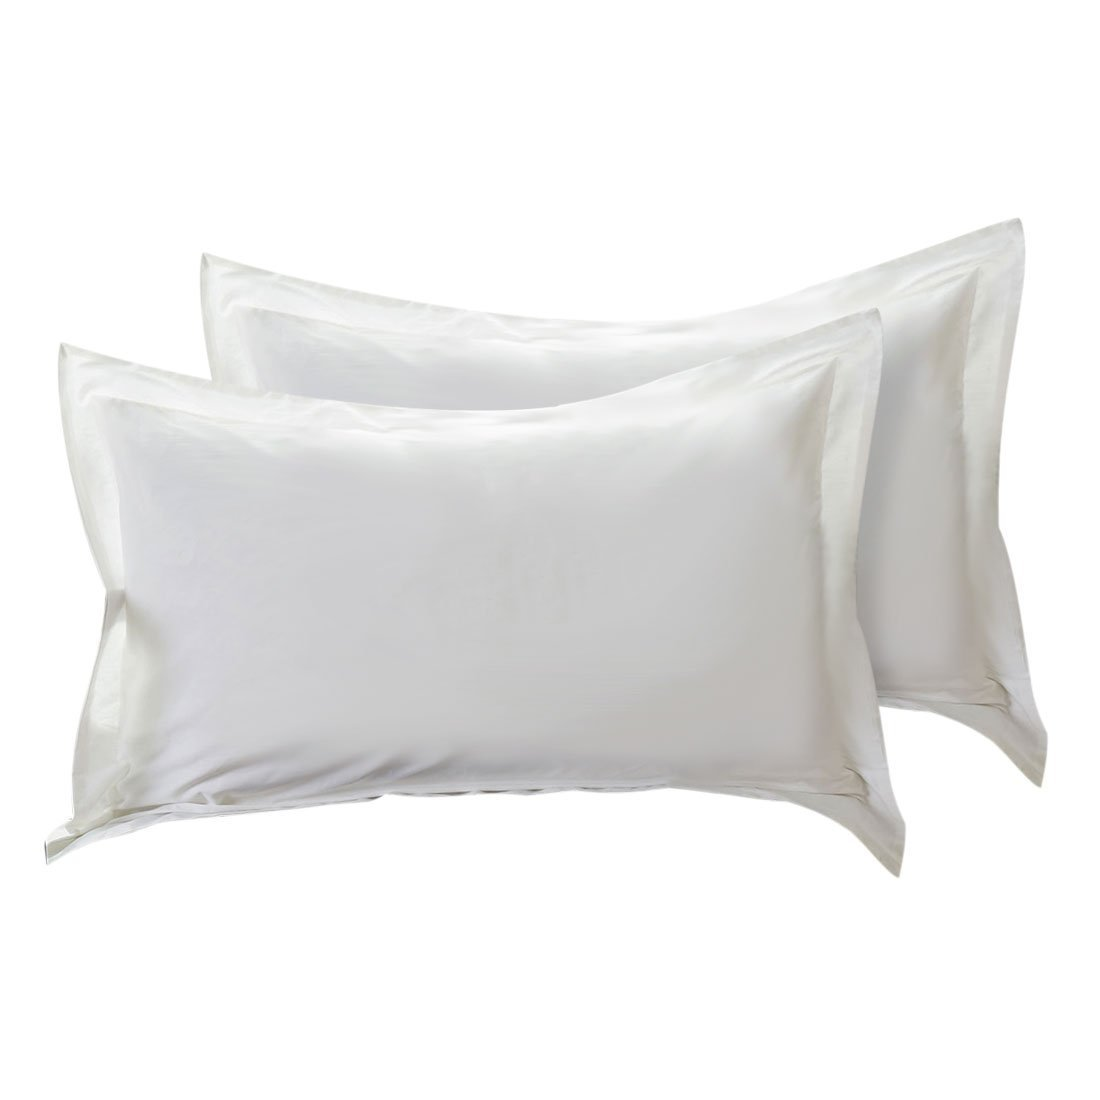 HH Linen's Easy Fit / Adjustable,Luxury Cotton Hotel & Spa Pillow Shams-with Flange[Body, White]